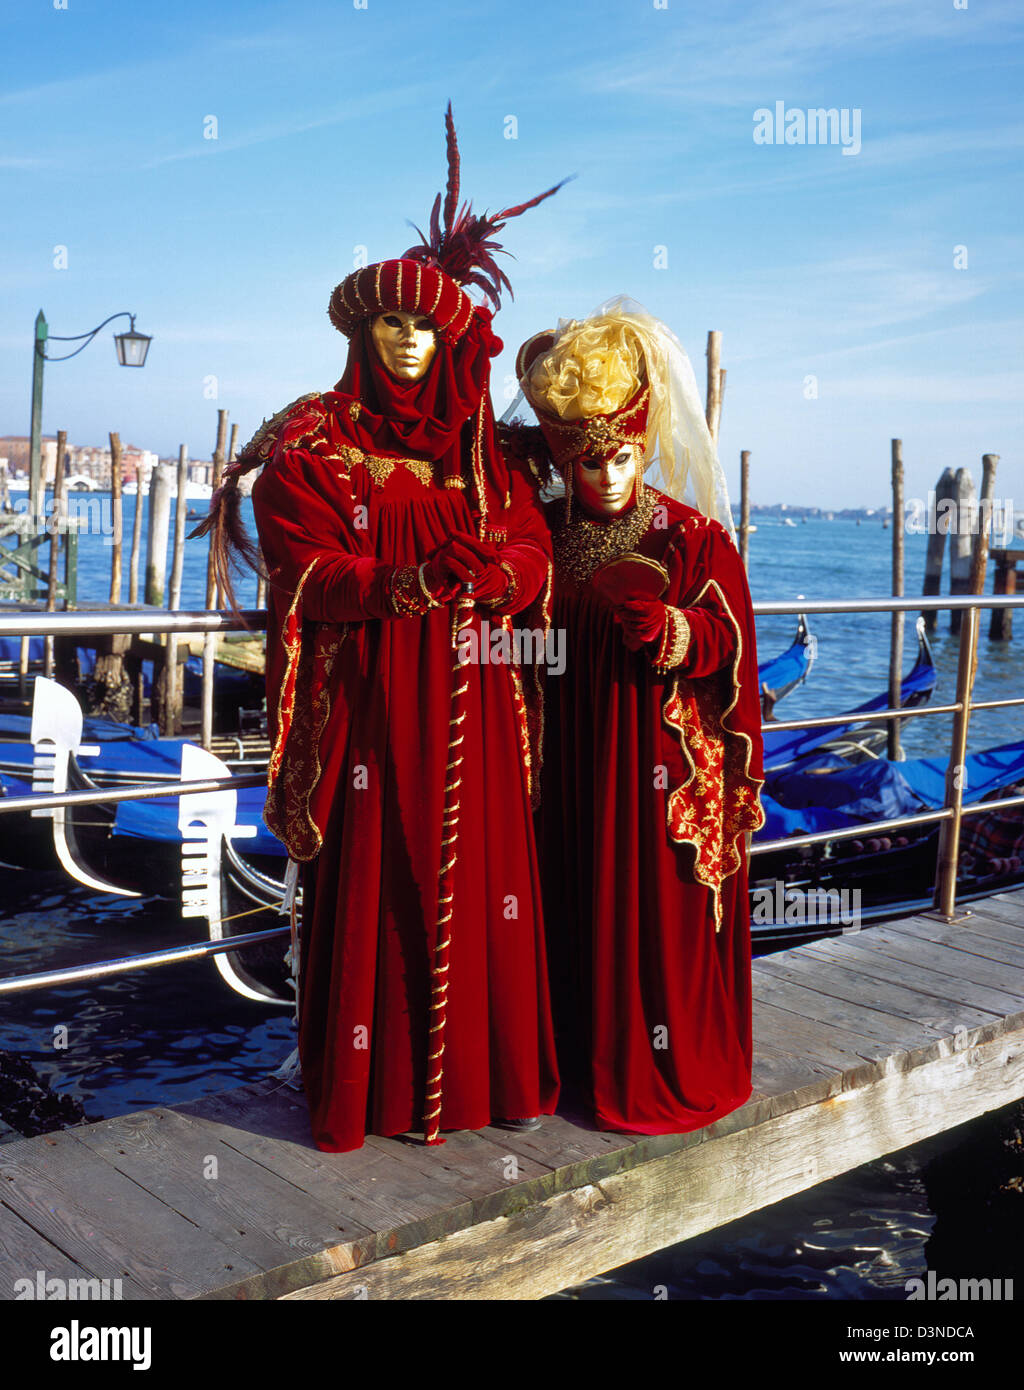 Two masks dressed up in historical costumes pose on a footbridge in Venice, Italy, 01 February 2006. Photo: Willy Stock Photo